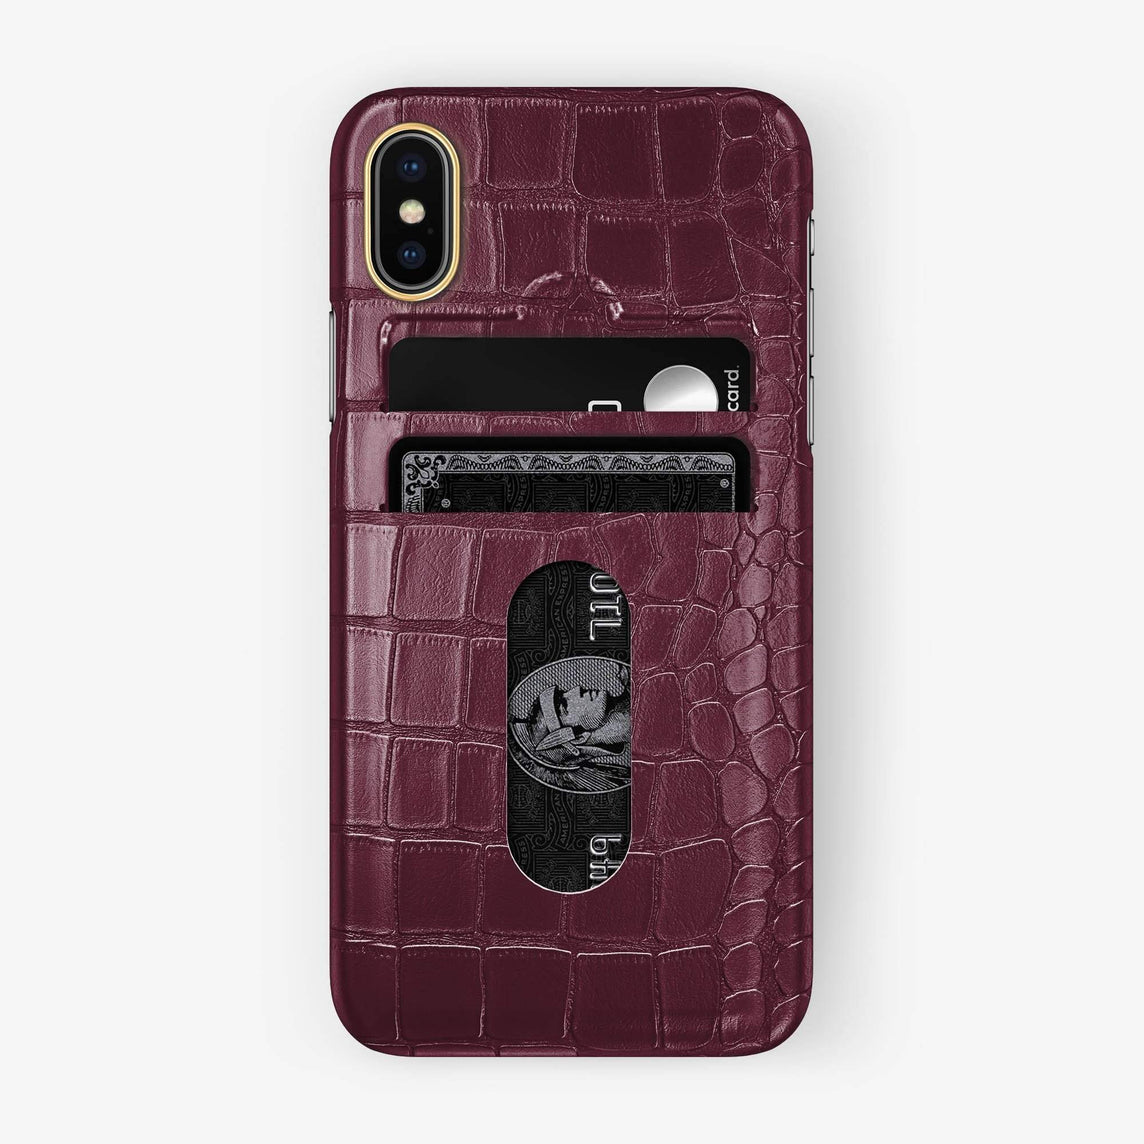 Alligator Card Holder Case iPhone Xs Max | Burgundy - Yellow Gold - Hadoro